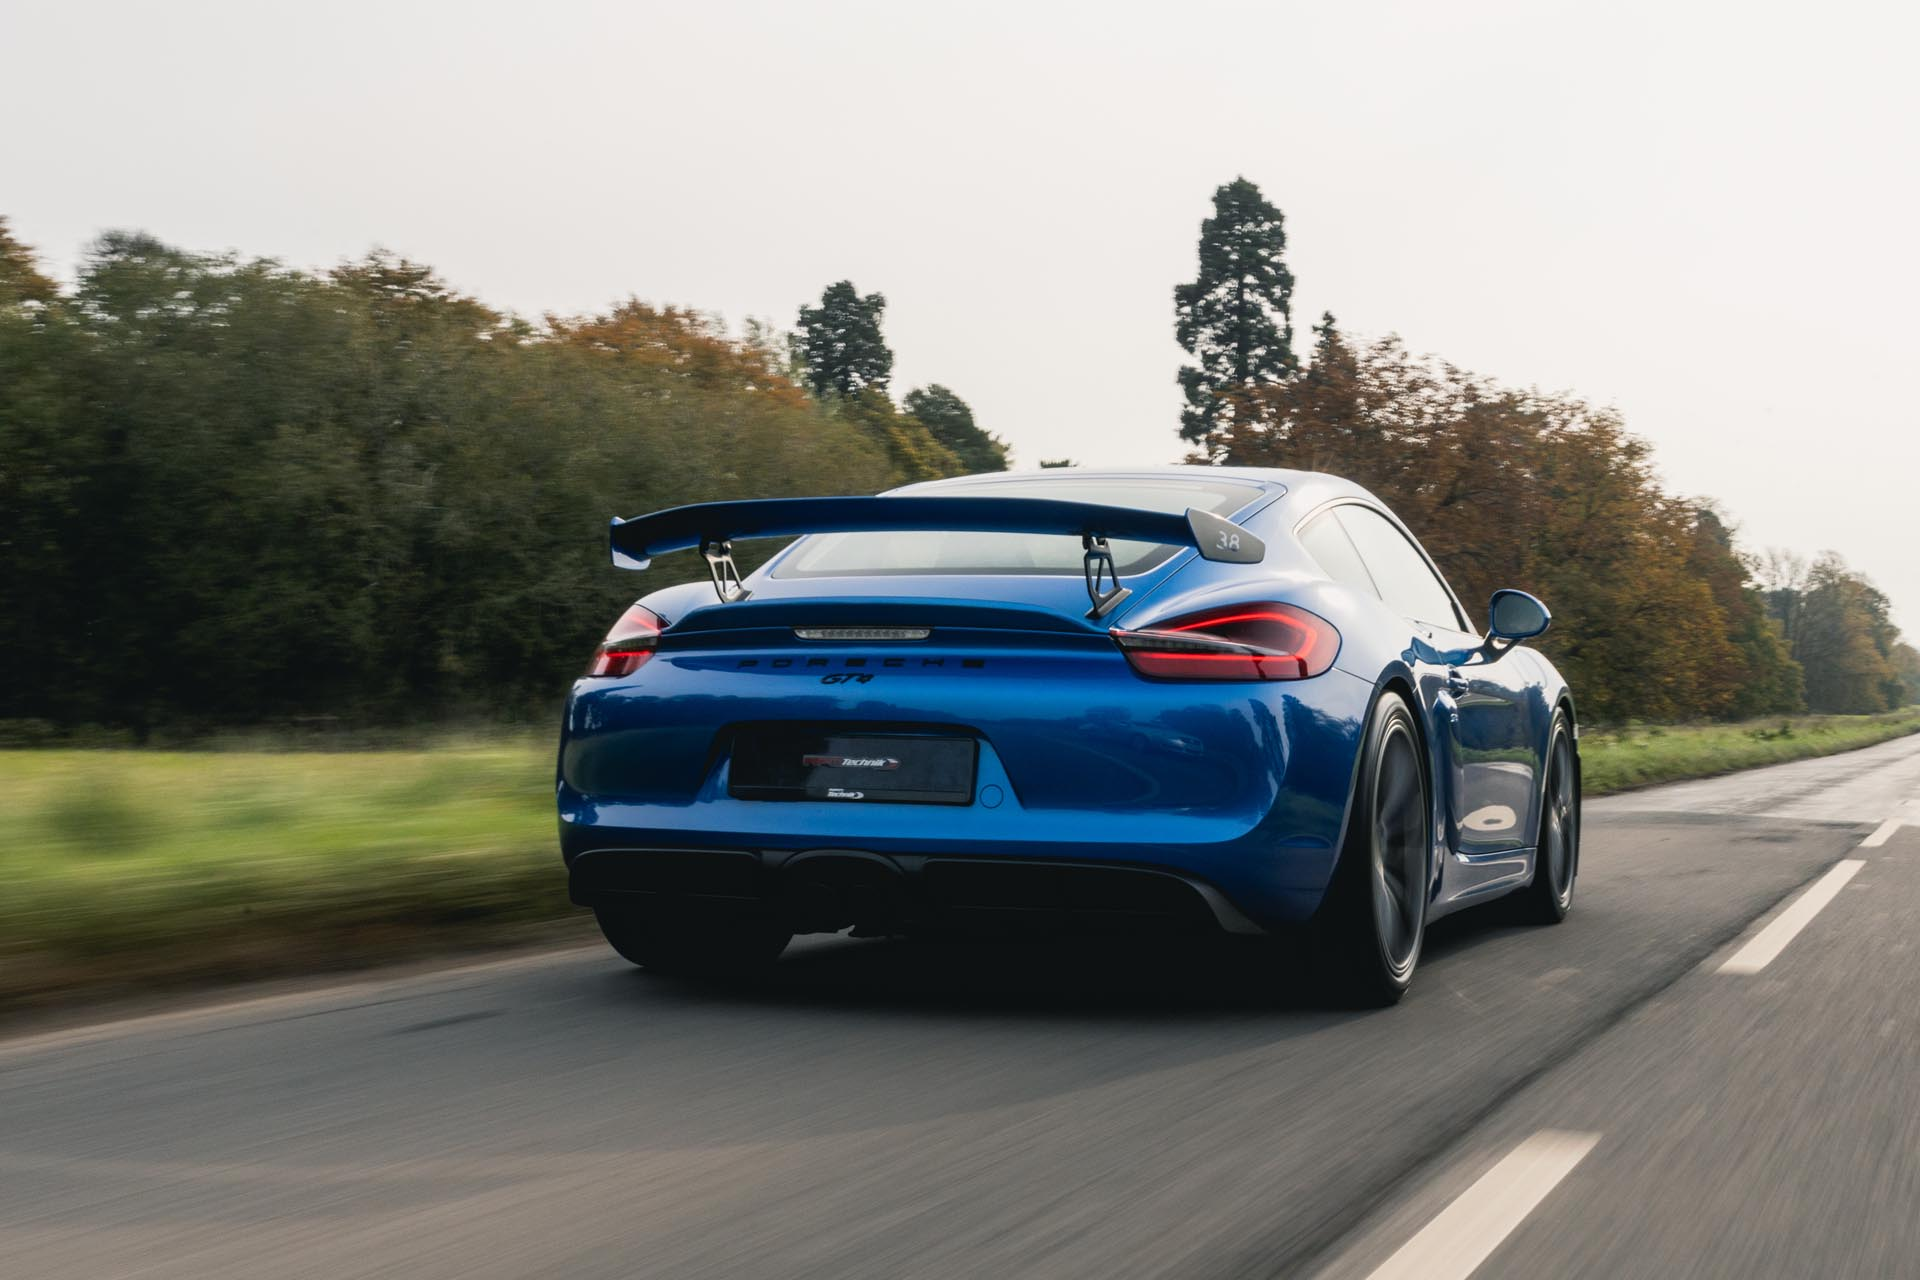 981-gt4-on-road